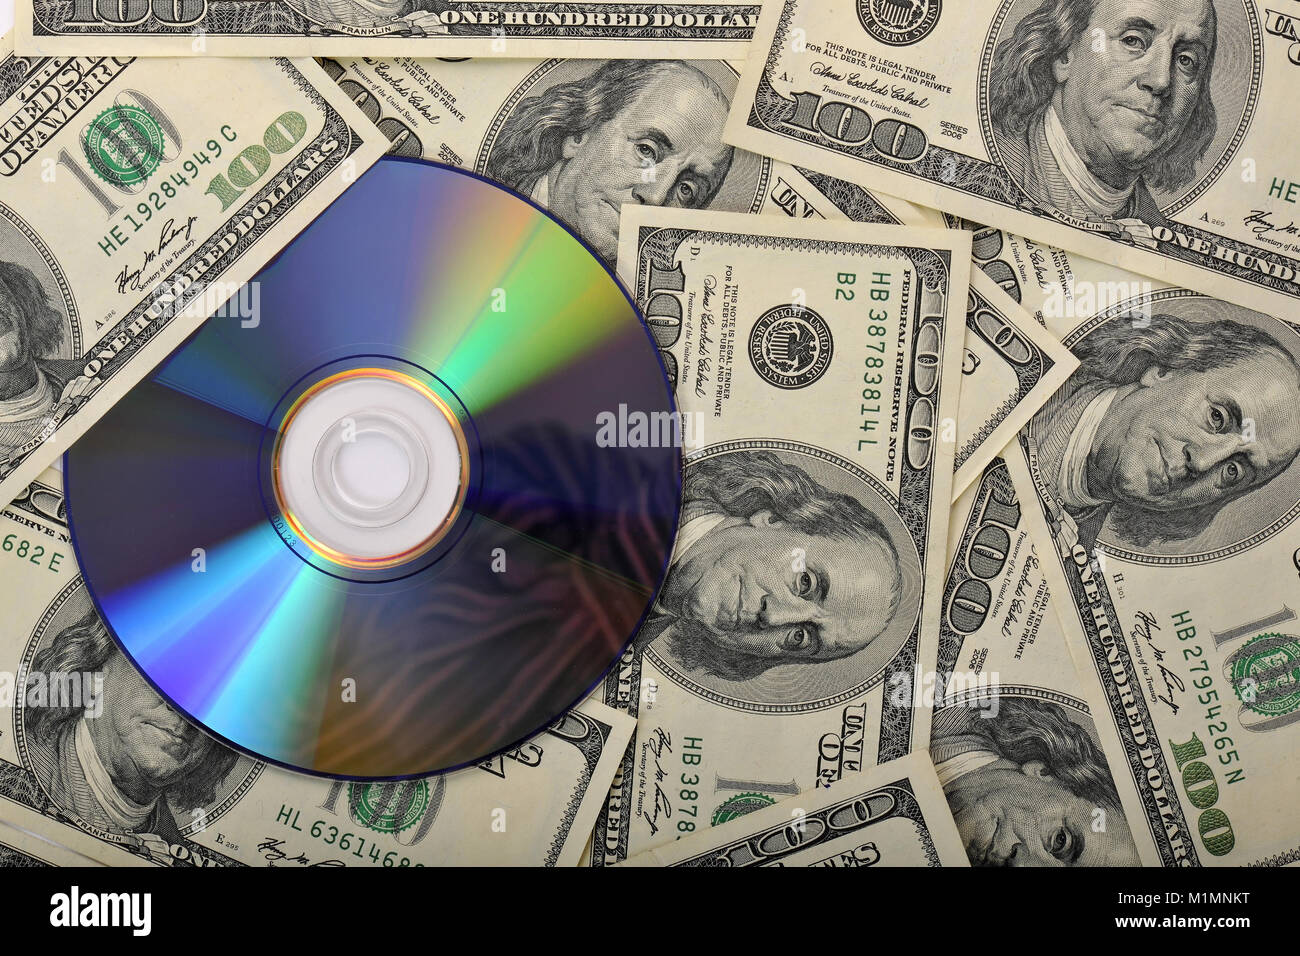 Bank notes, CD, DVD, data protection, tax evasion, pirated copies, etc., Banknoten, Datenschutz, Steuerhinterziehung, Stock Photo